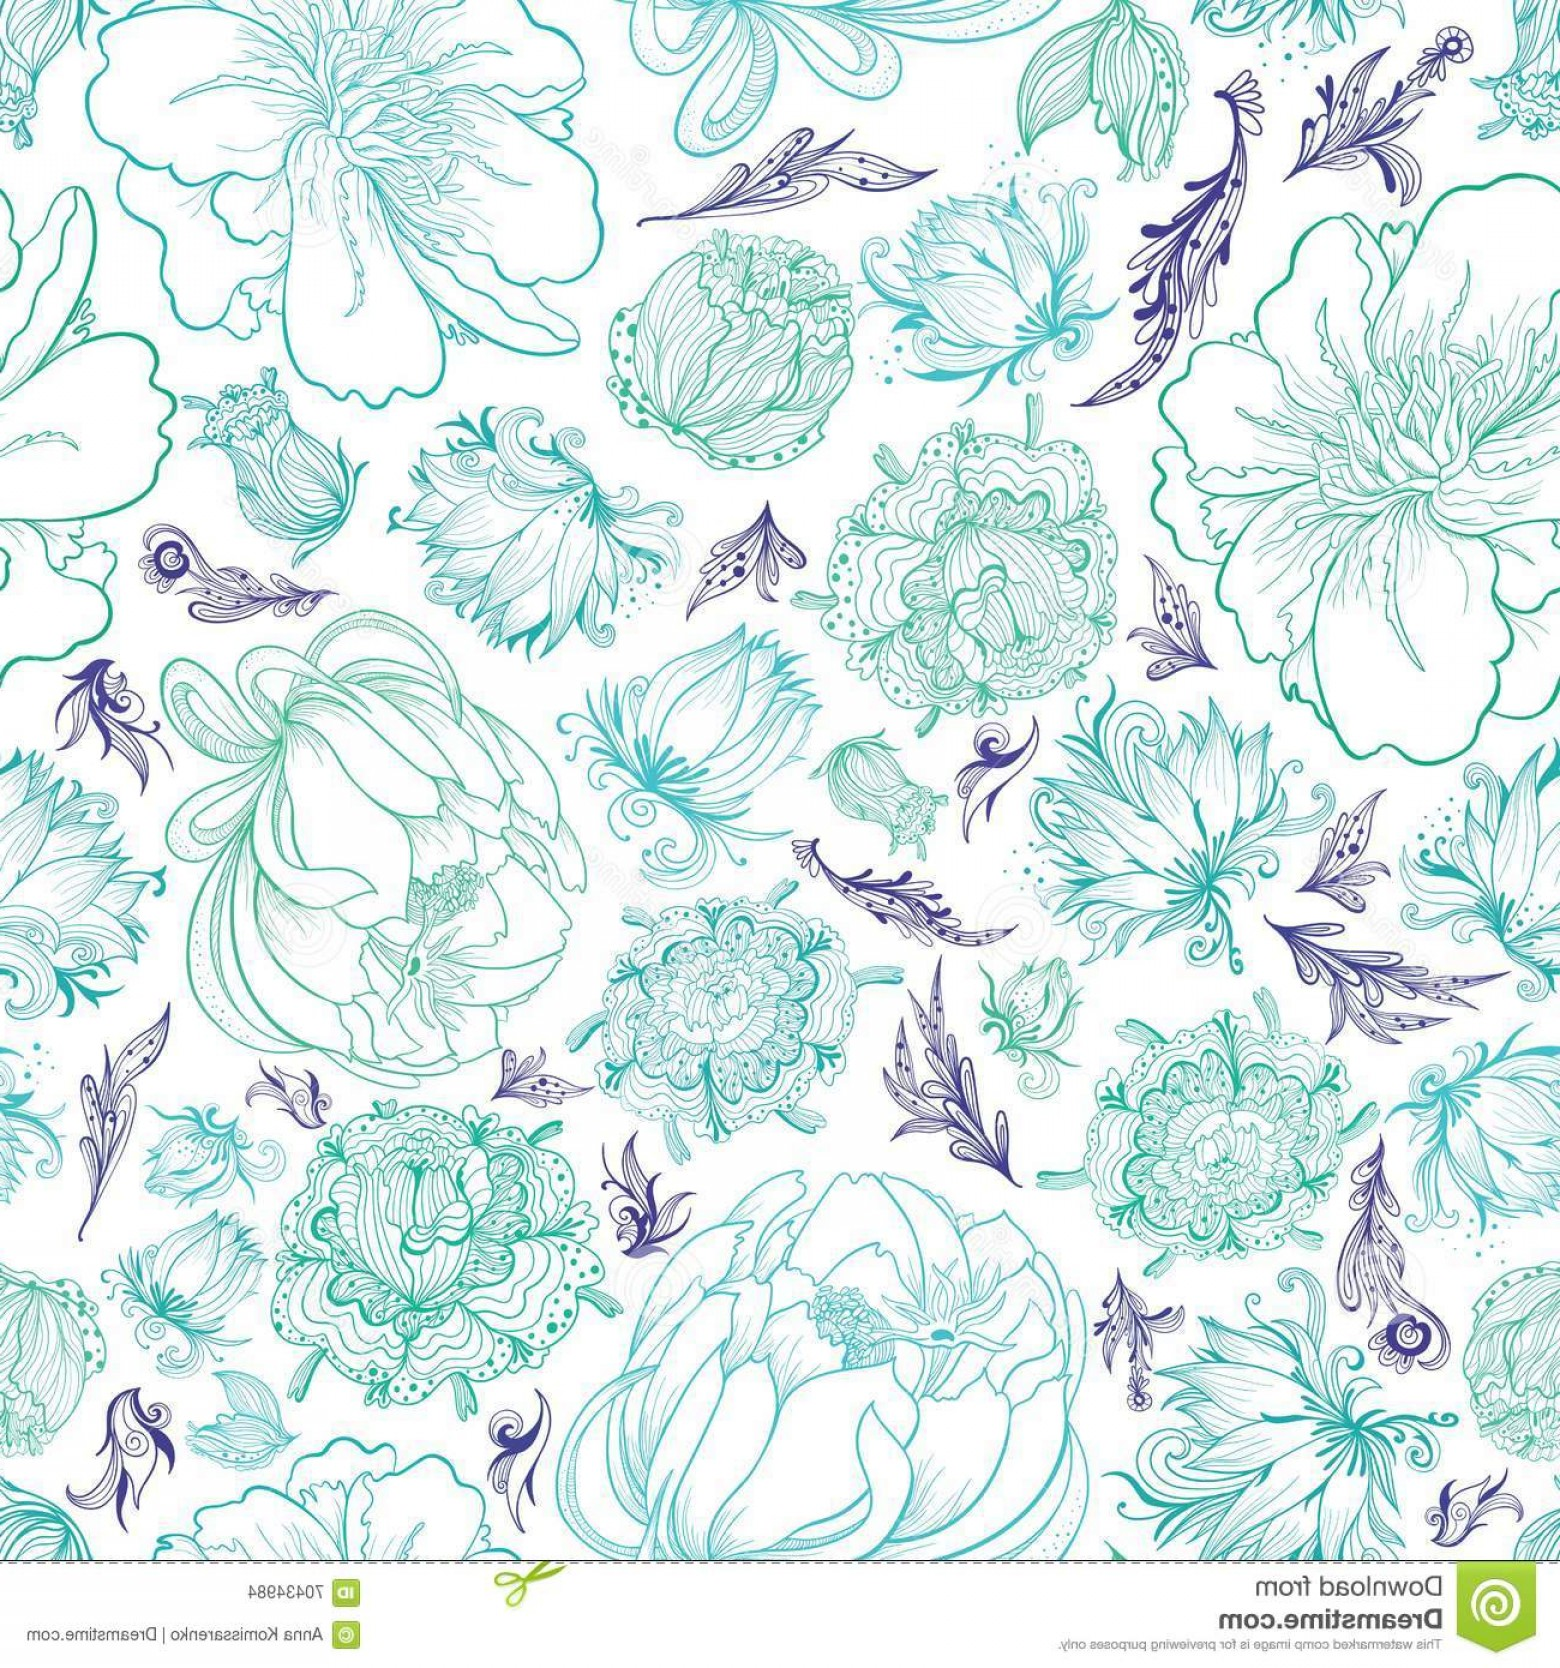 Turquoise Flower Vector: Stock Illustration Turquoise Vector Sketch Floral Pattern Seamless Romantic Elegant Background Ornamental Doodle Style Flowers Image